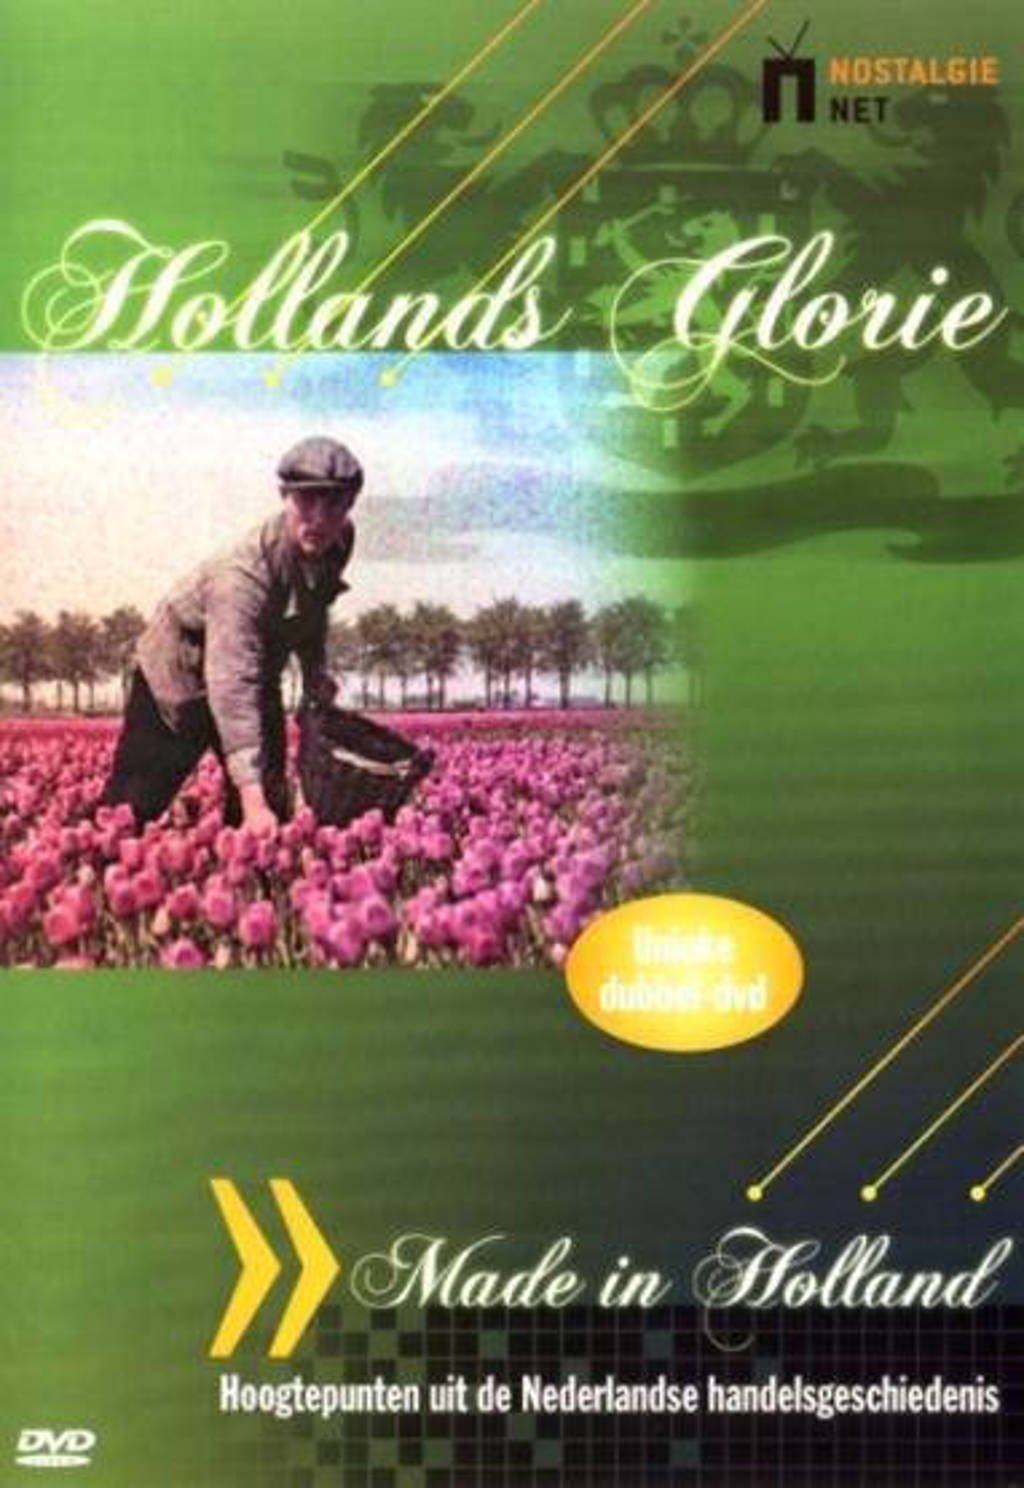 Hollands glorie-made in Holland (DVD)